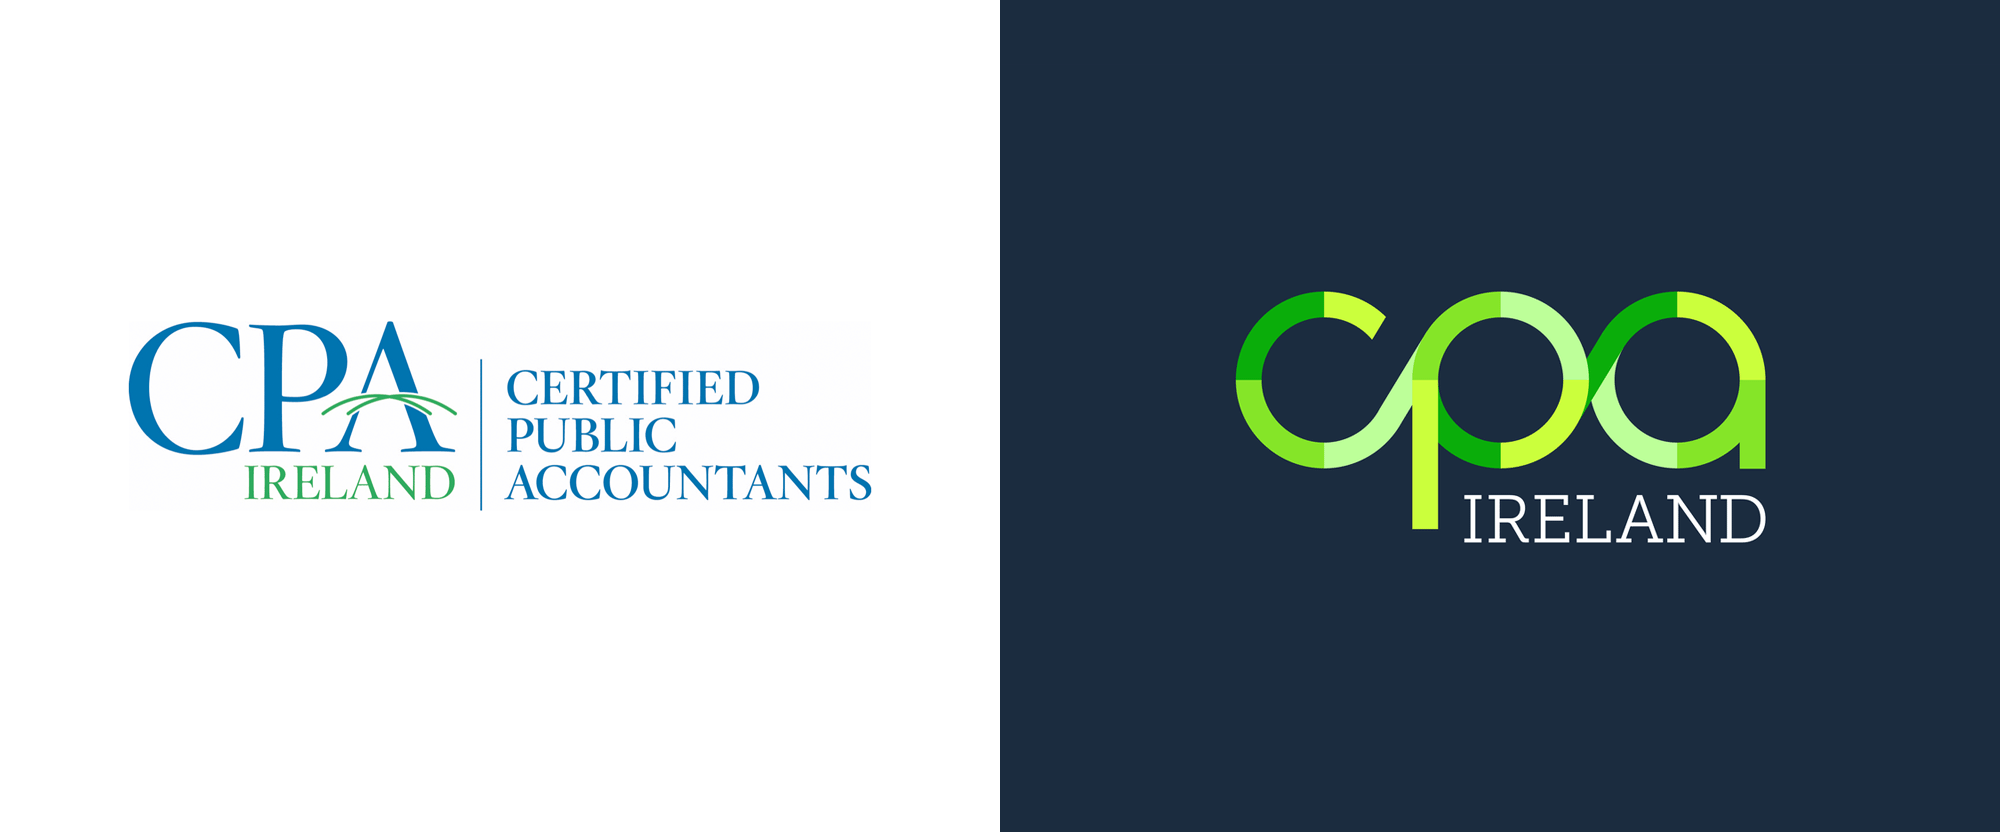 New Logo and Identity for CPA Ireland by White Bear Studio